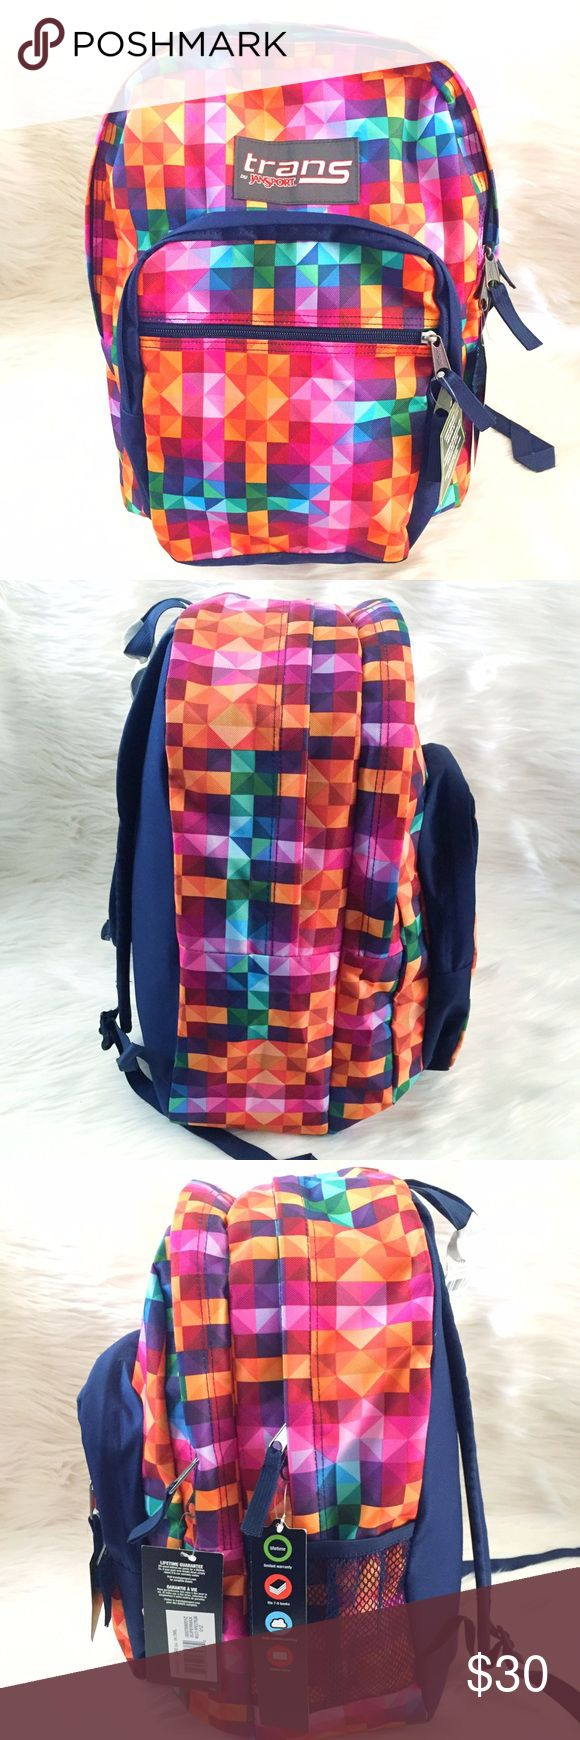 "Trans by Jansport Geometric Backpack Brand new with tags. This Trans by Jansport Multi Colored Geometric Backpack is so fun, bright and vibrant! Has 2 large zippered compartments, 2 smaller zippered pockets and 1 side mesh pockets. Has padded adjustable shoulder straps and a top loop for easy handling. Has a built in laptop sleeve pocket that fits laptops up to 15"". Measures 17"" H x 12.5"" W x 7.5"" D. Jansport Bags Backpacks"